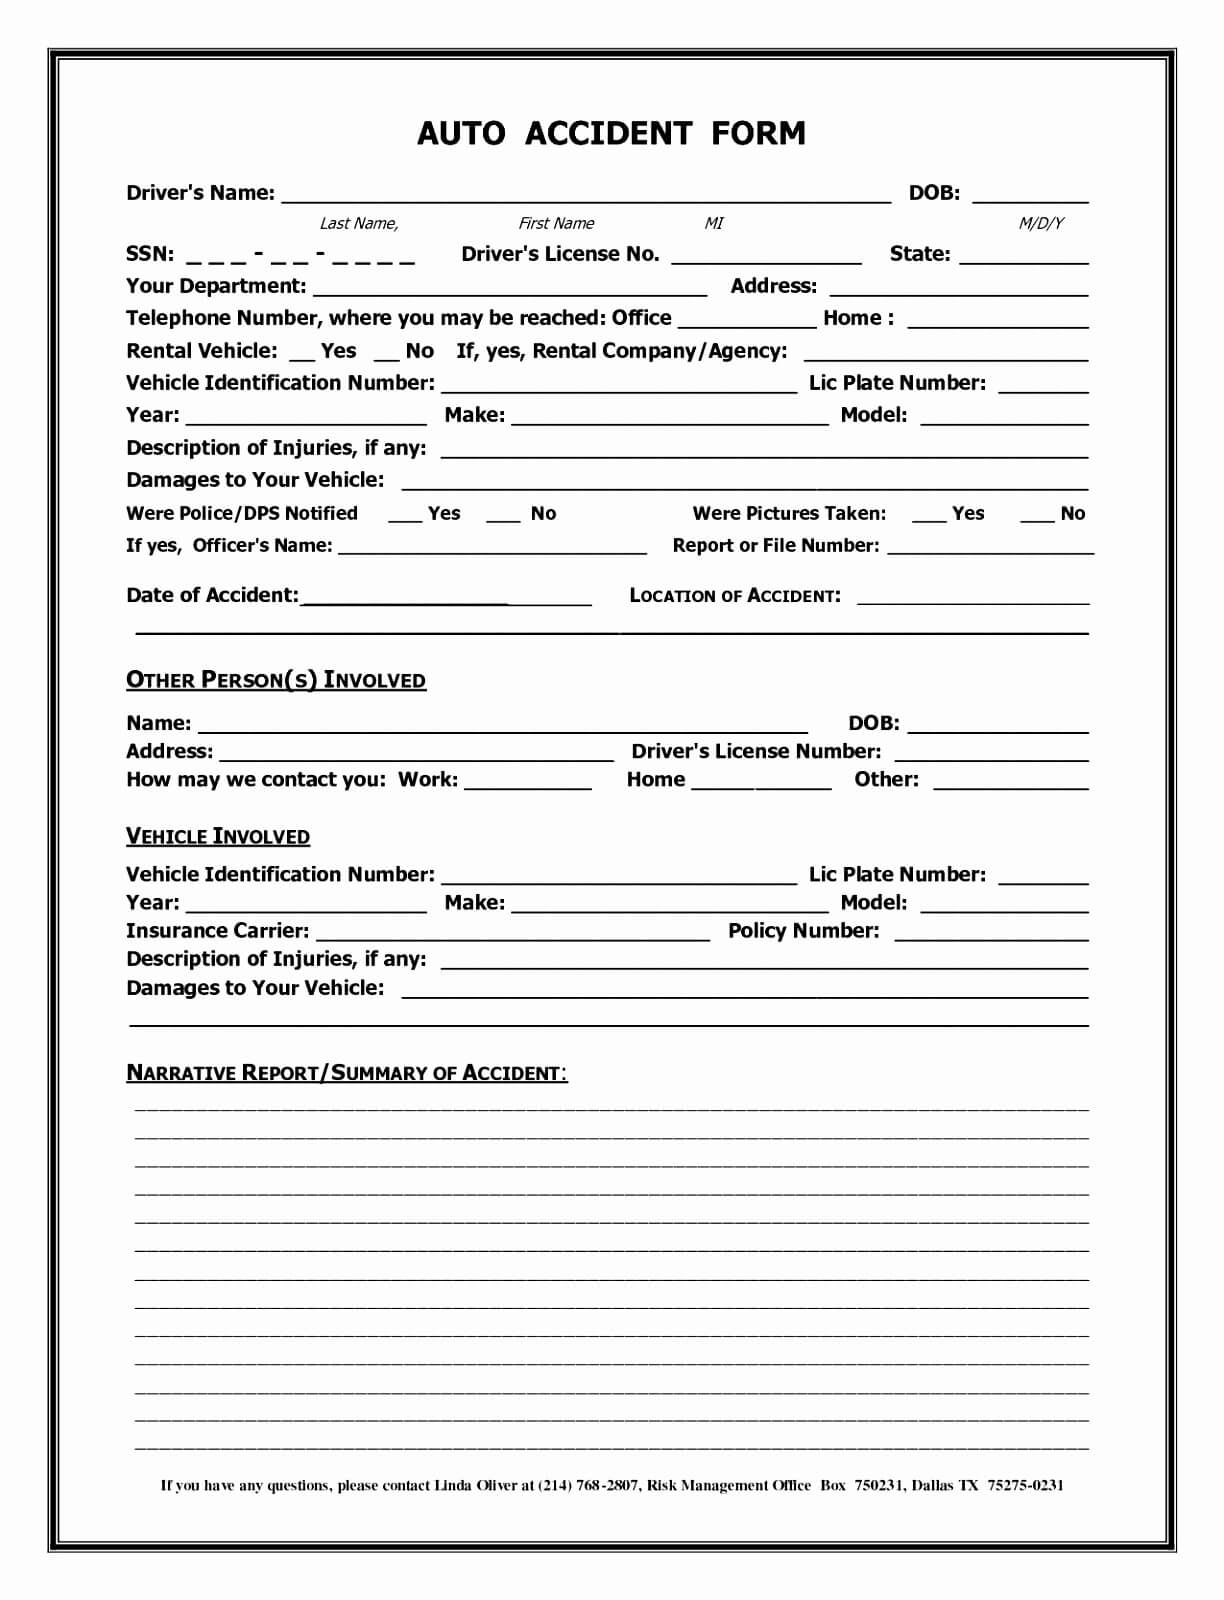 002 Template Ideas Accident Report Form Uk Of Motor Vehicle Inside Accident Report Form Template Uk